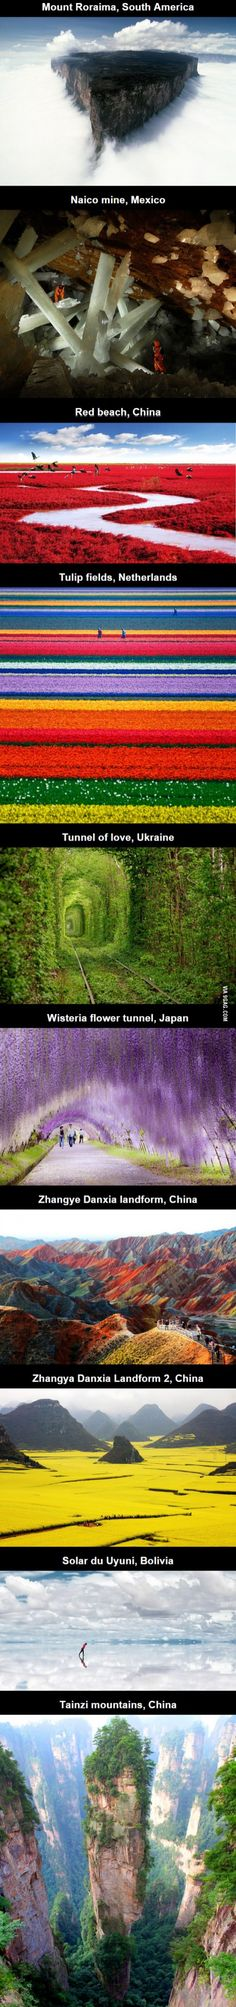 10 places that don't look real